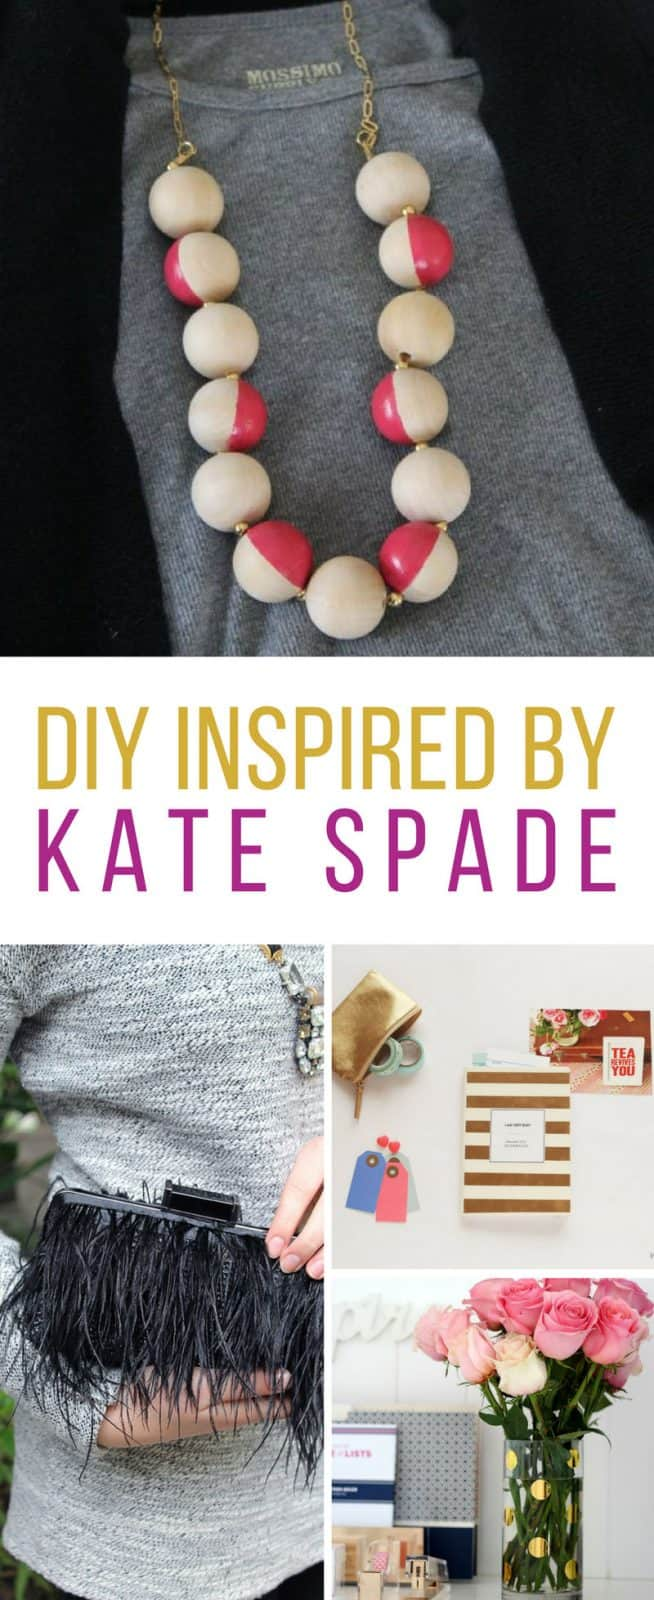 These DIY Kate Spade projects are brilliant! Thanks for sharing!